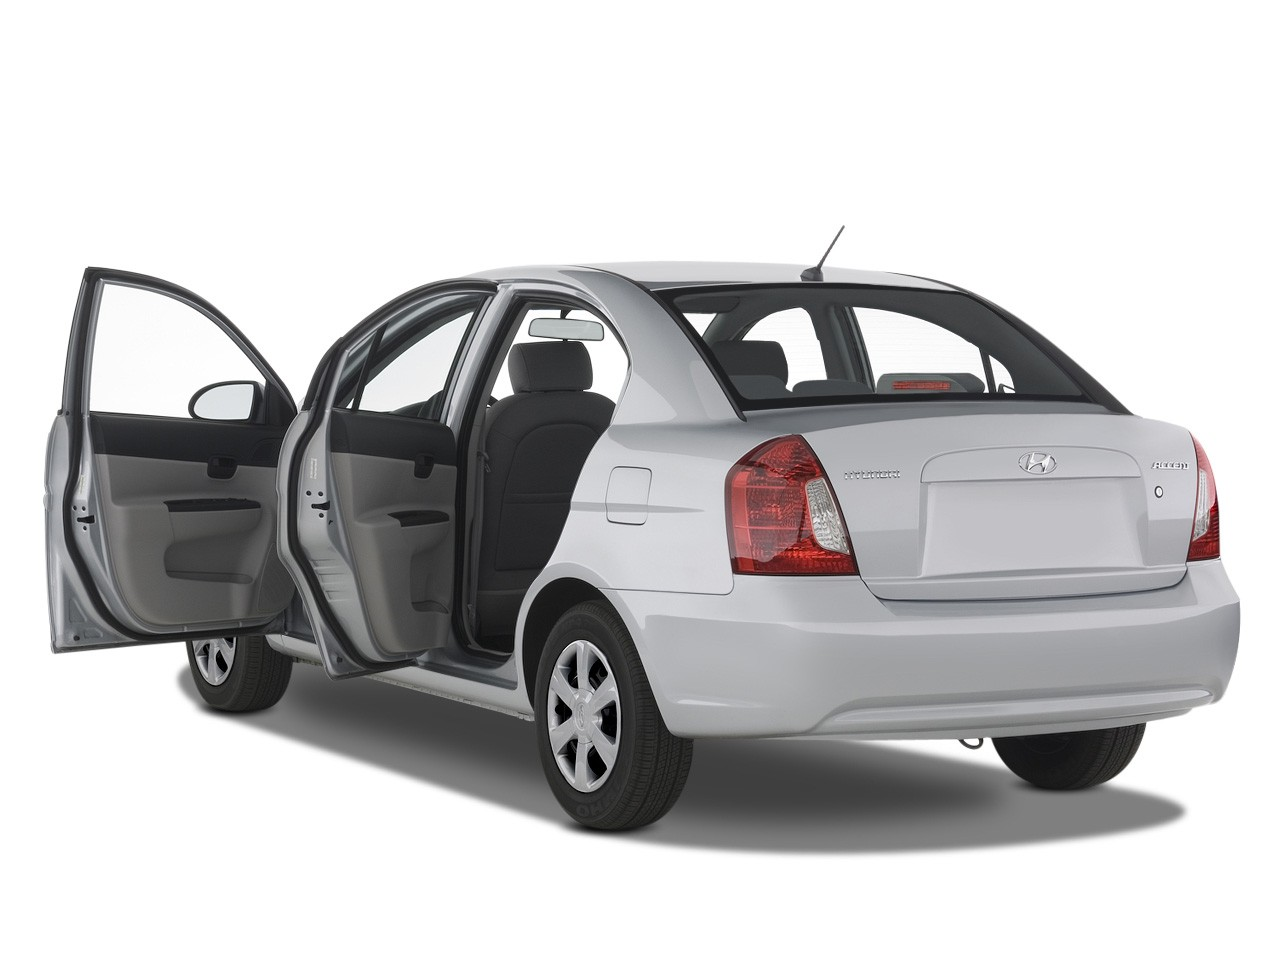 Hyundai Accent 4 Doors 2006 2007 2008 2009 2010